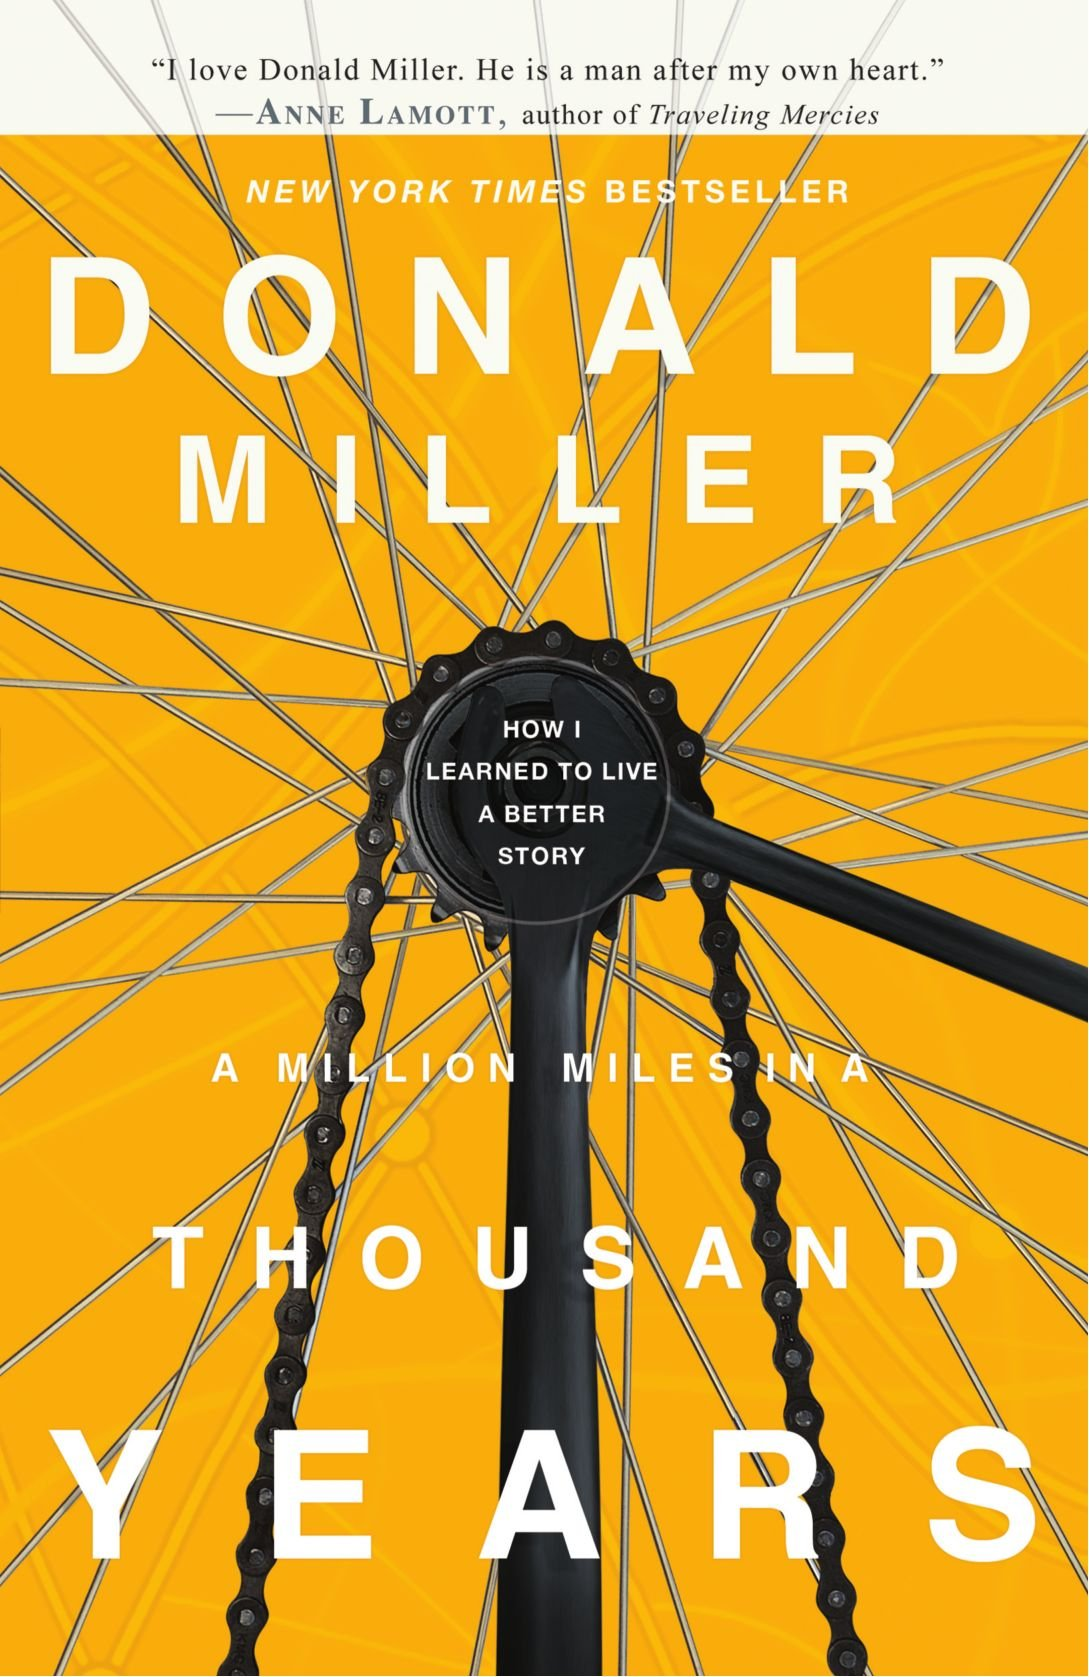 A Million Miles in a Thousand Years (Donald Miller)